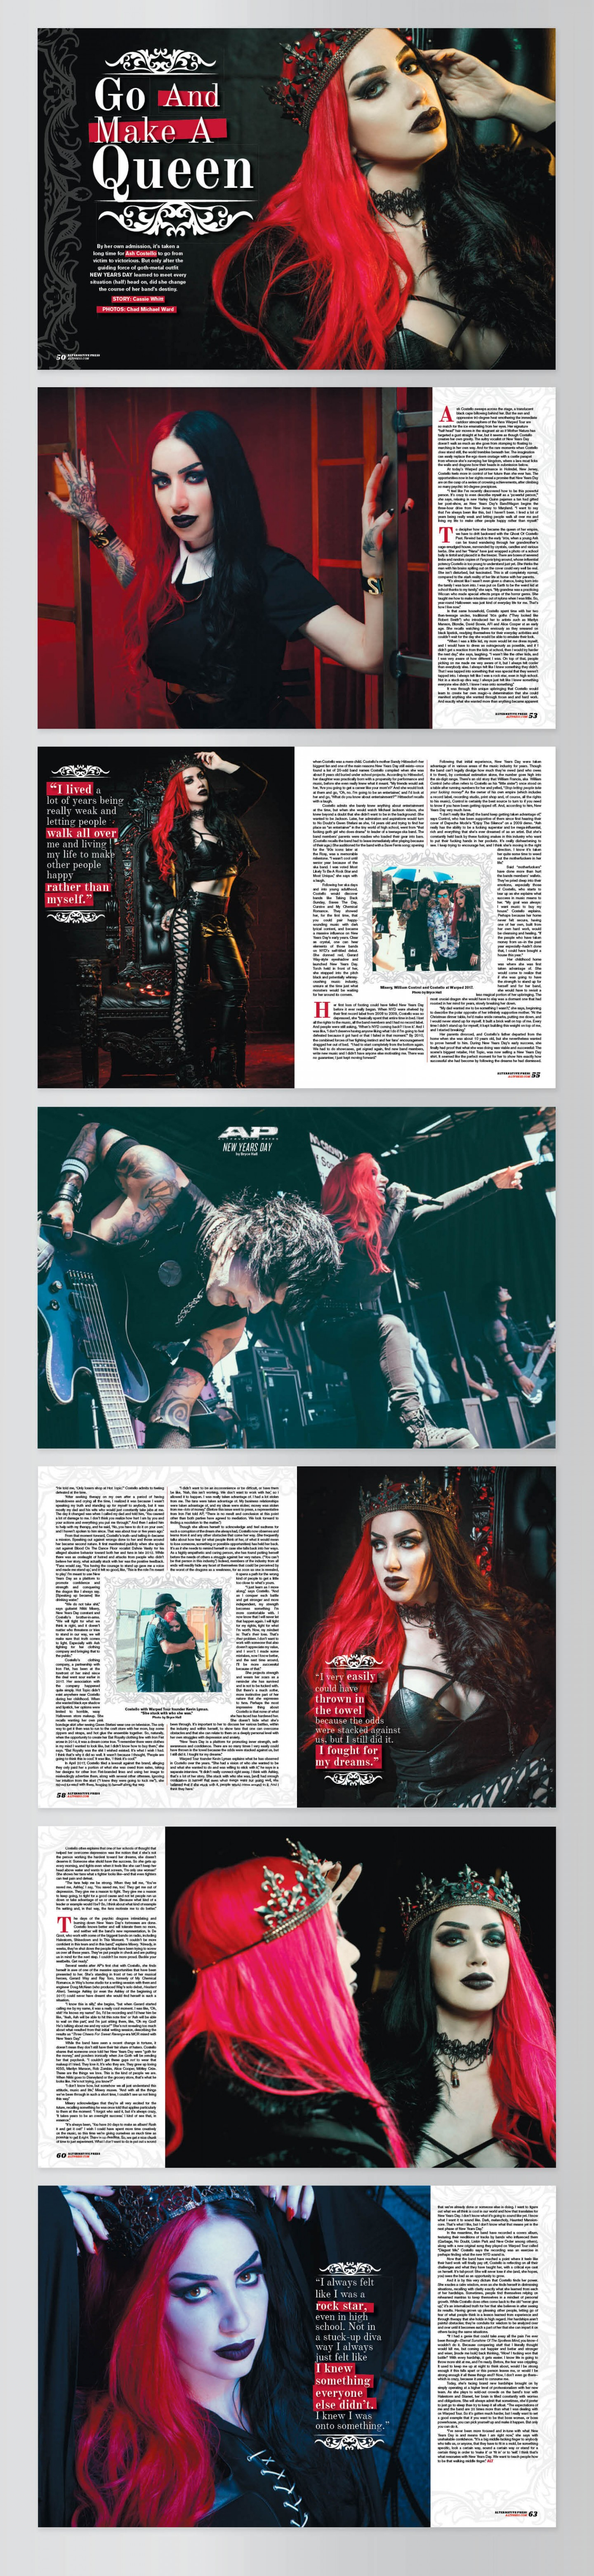 Ash Costello Cover Story